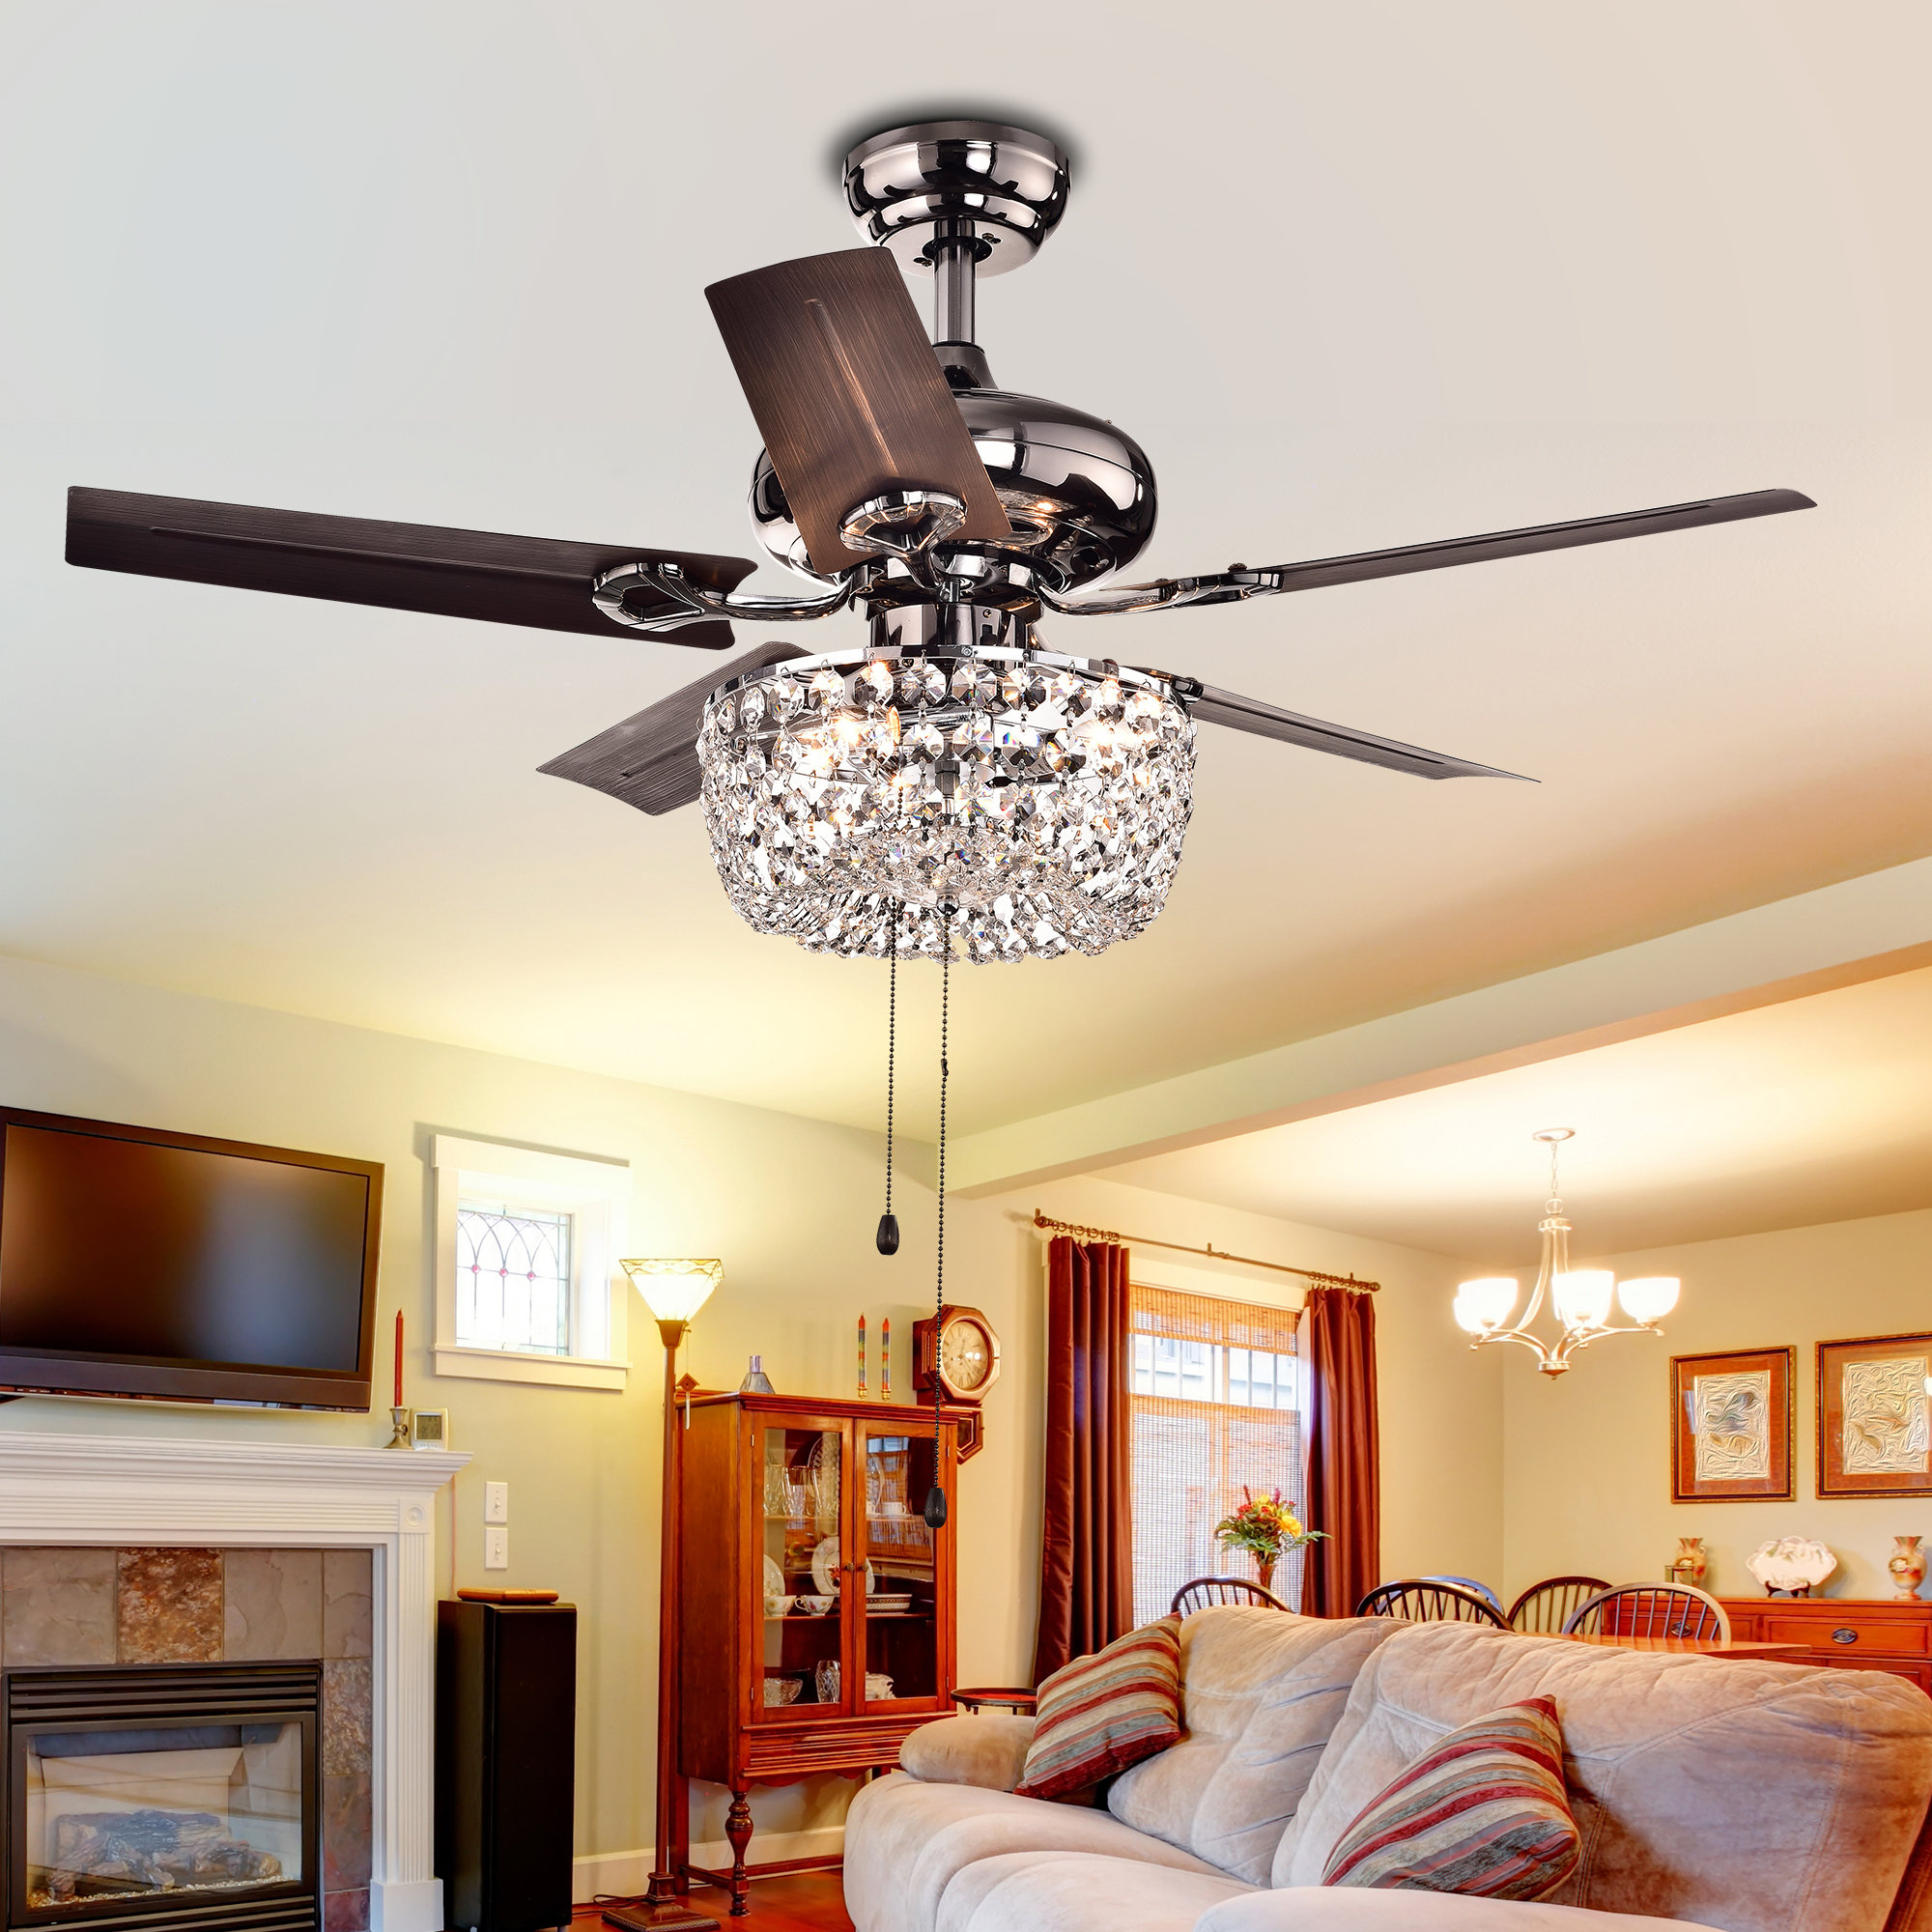 "43"" Aslan 5 Blade Ceiling Fan, Light Kit Included Within Trendy Ravello 5 Blade Led Ceiling Fans (View 1 of 20)"